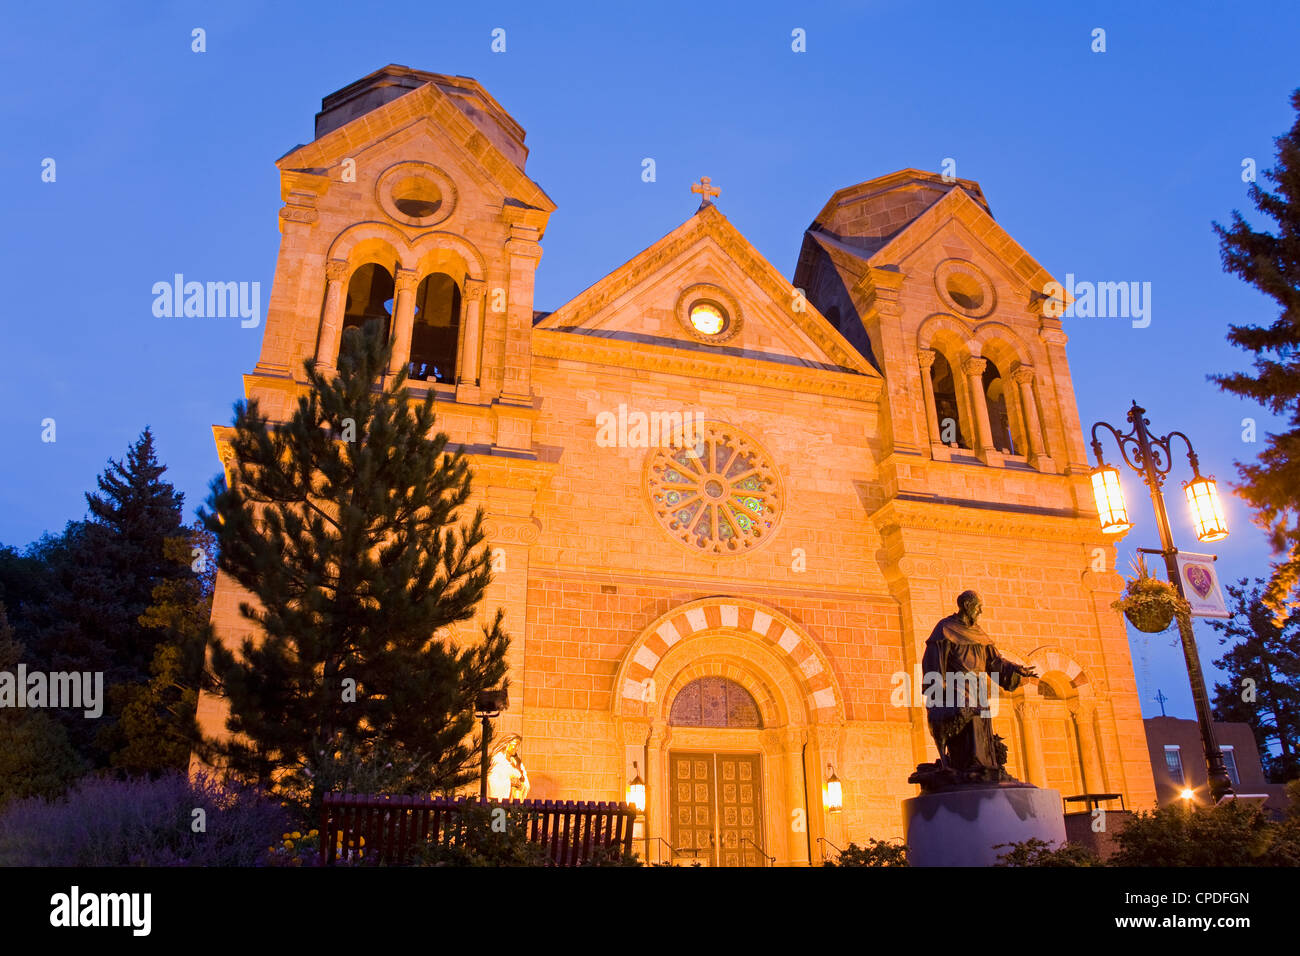 Cathedral Basilica of St. Francis of Assisi, Santa Fe, New Mexico, United States of America, North America - Stock Image